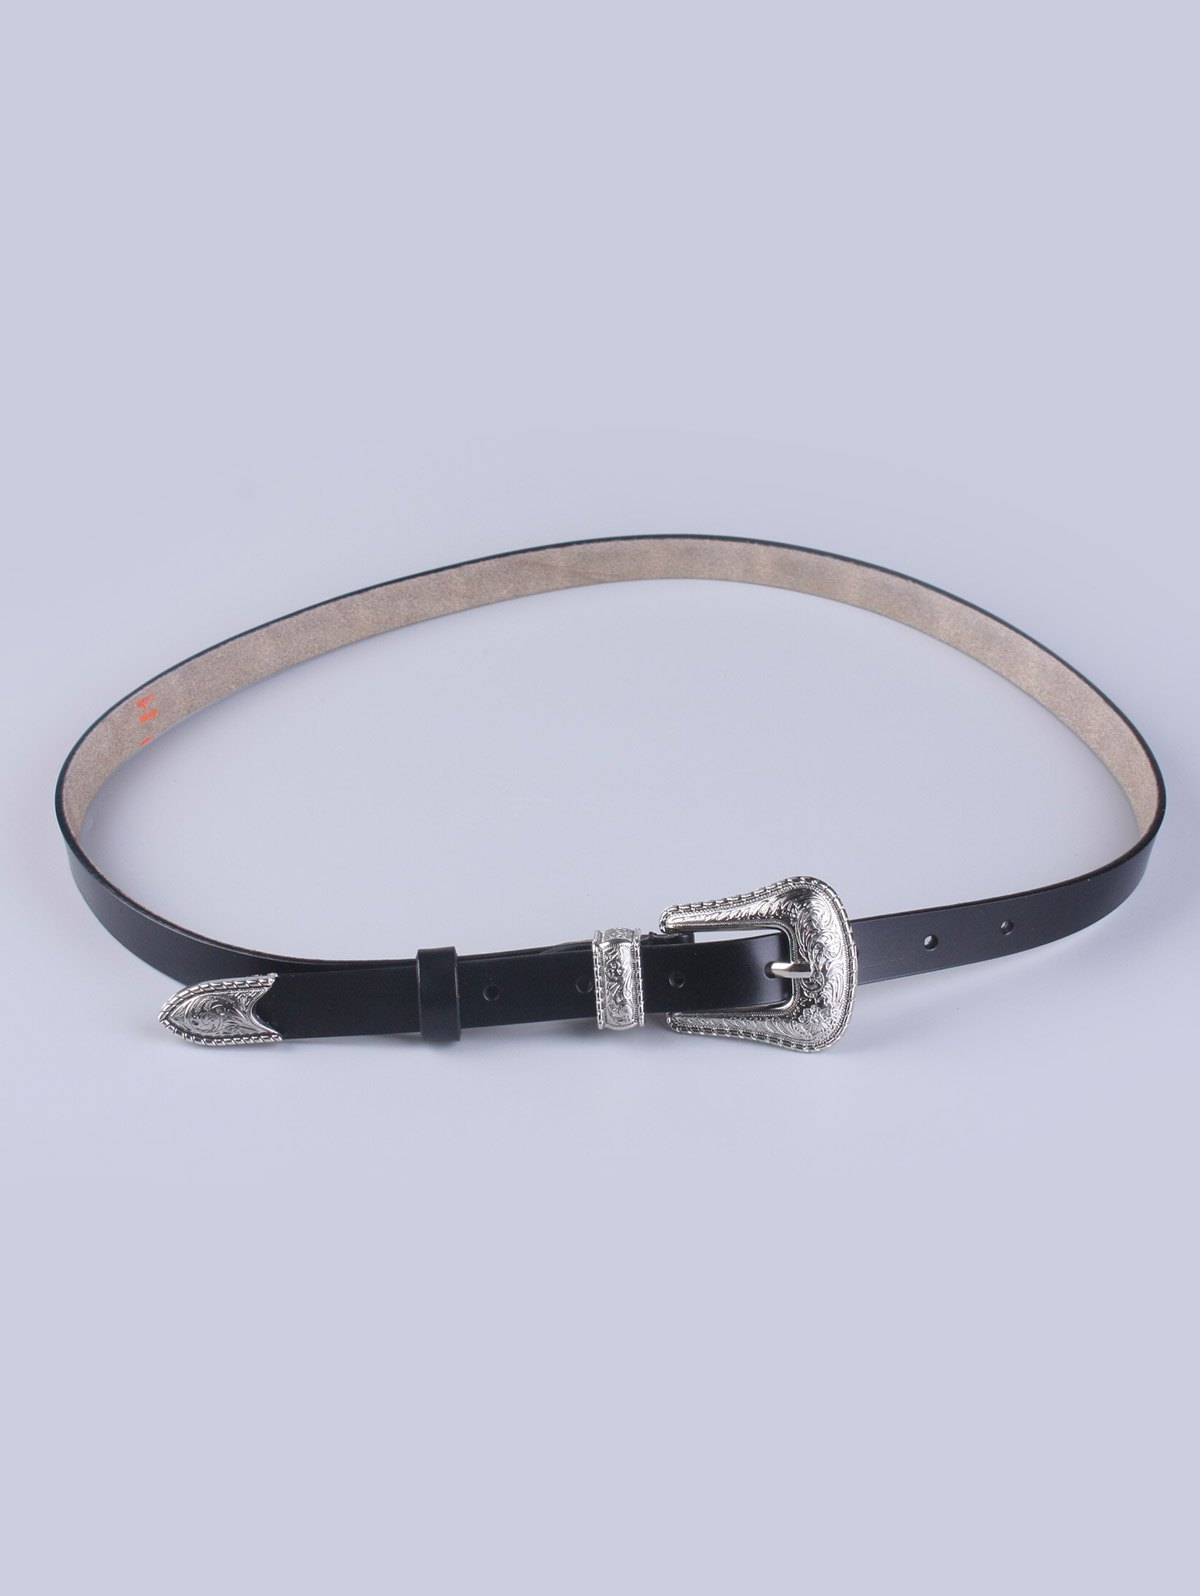 Vintage Pin Buckle Faux Leather Waist Belt